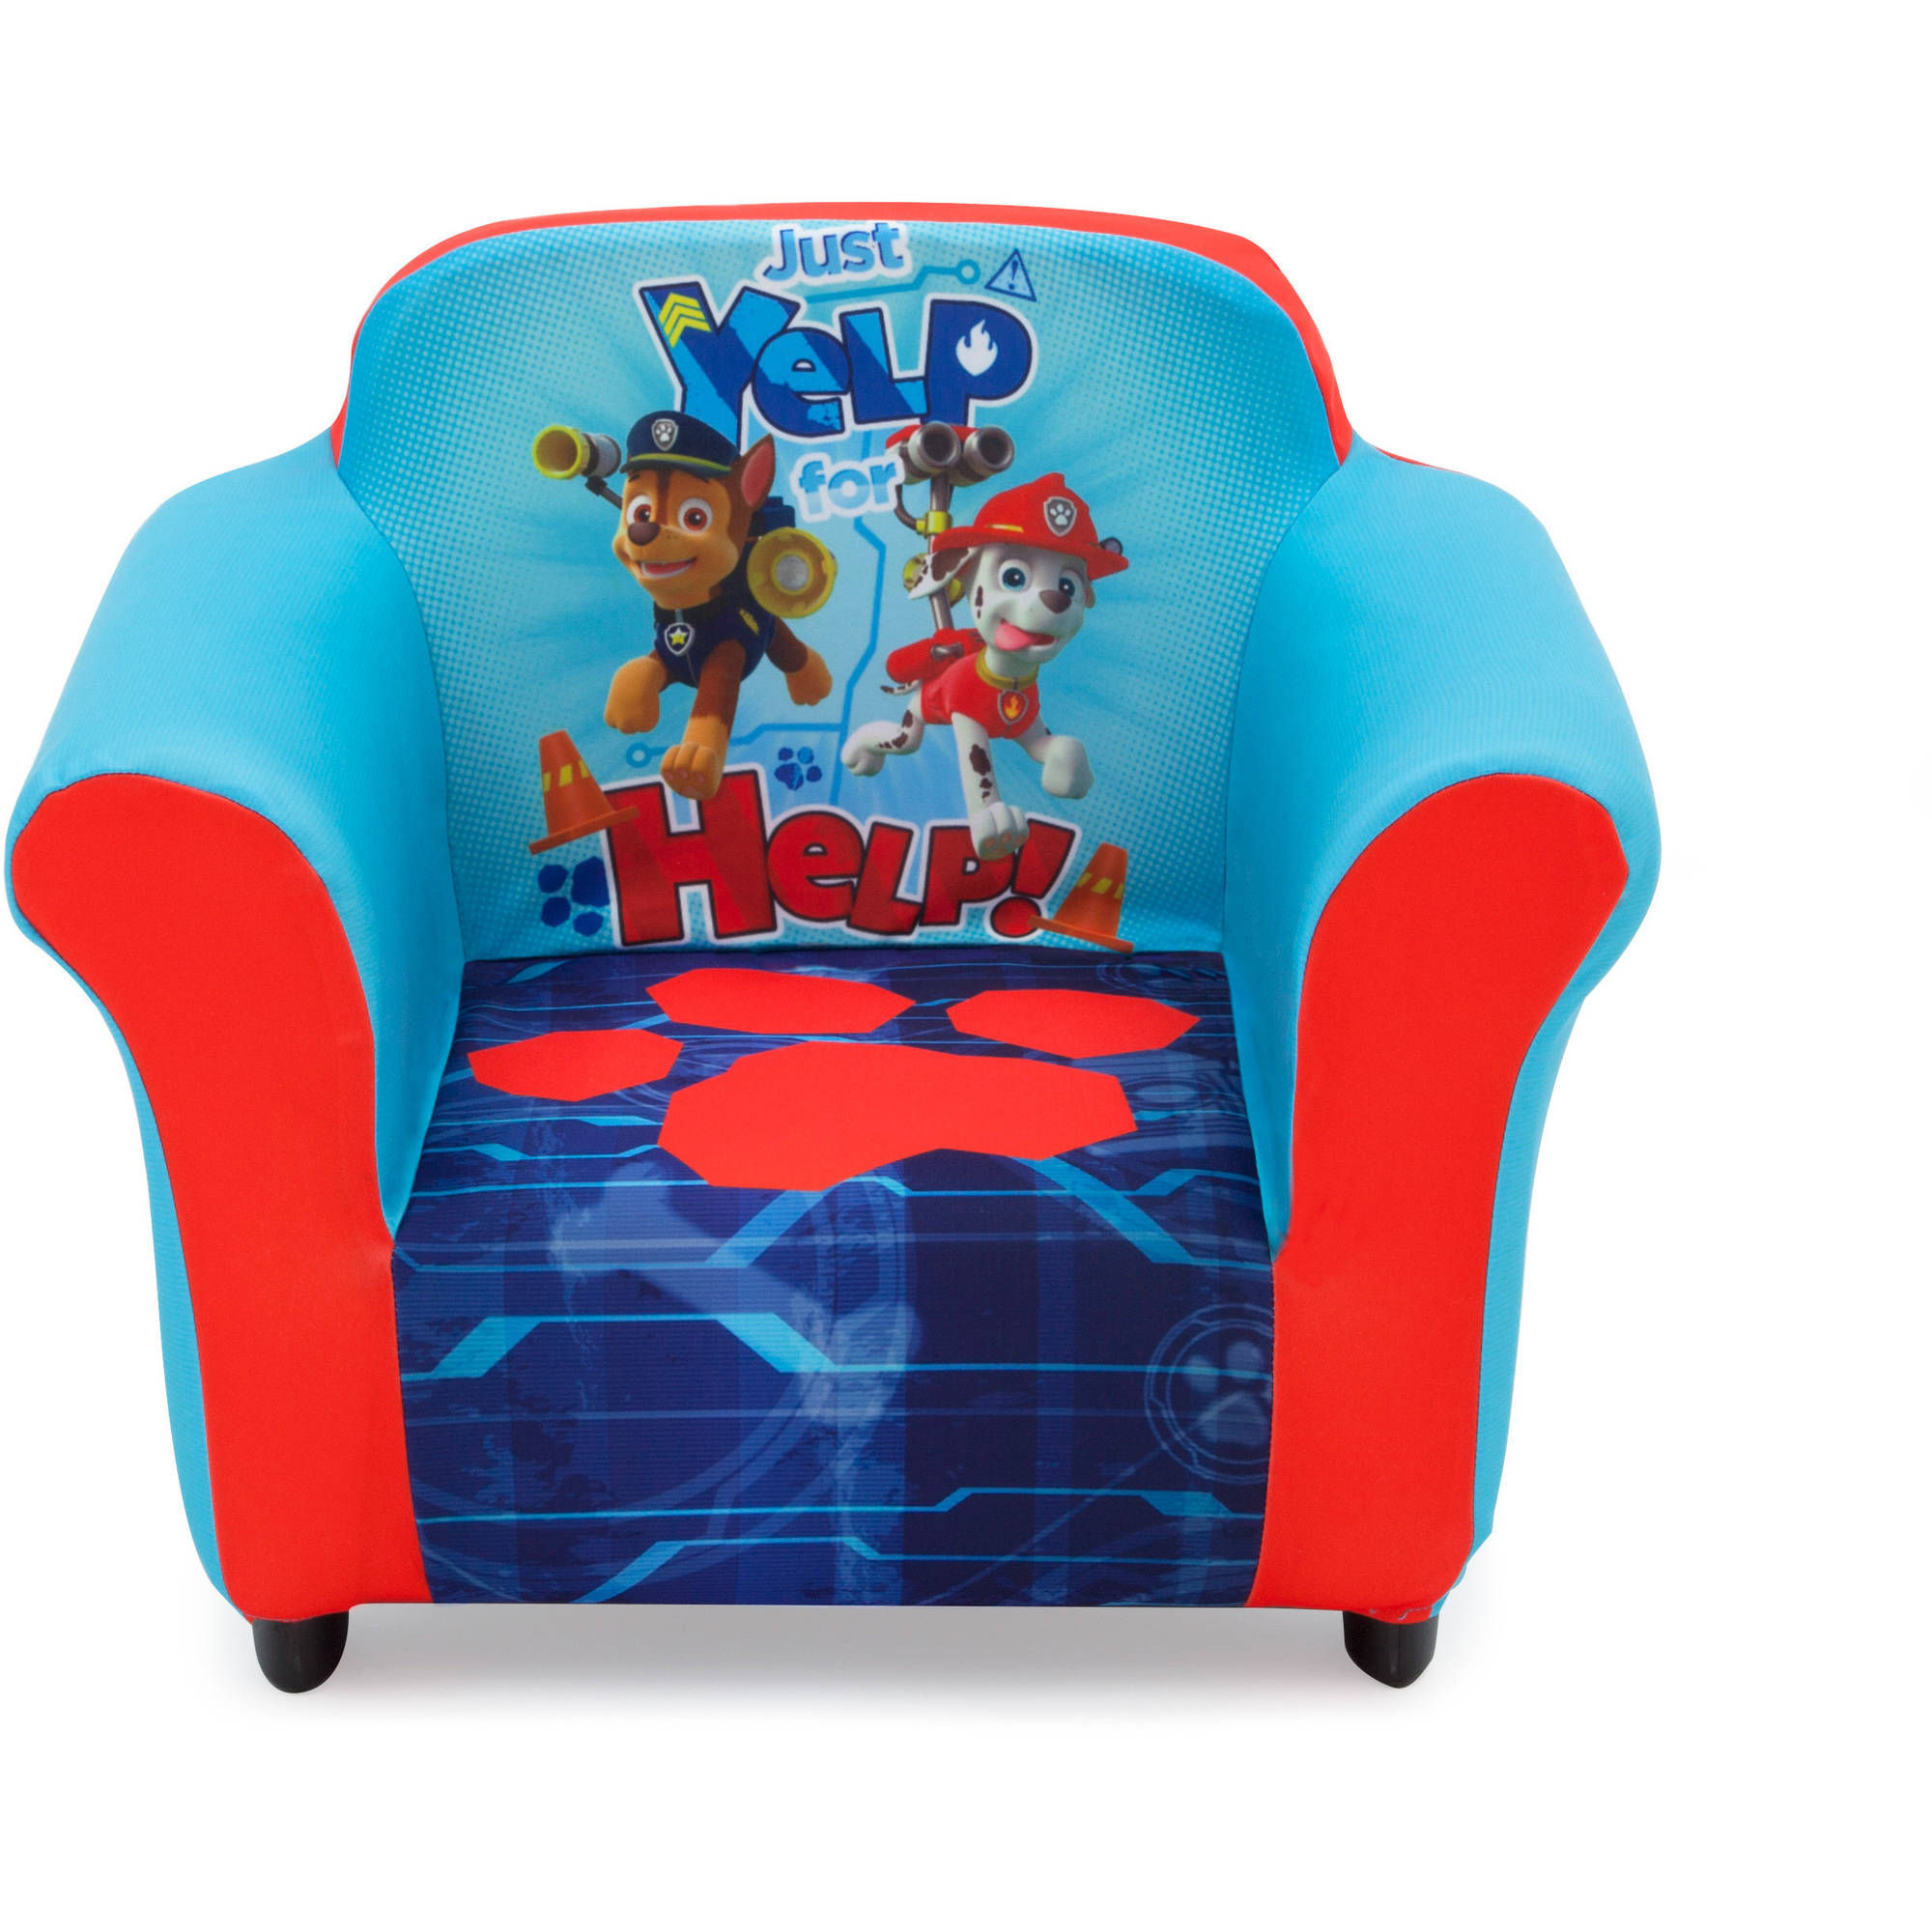 Toddler Chairs Upholstered Nick Jr Paw Patrol Kids Upholstered Chair With Sculpted Plastic Frame By Delta Children